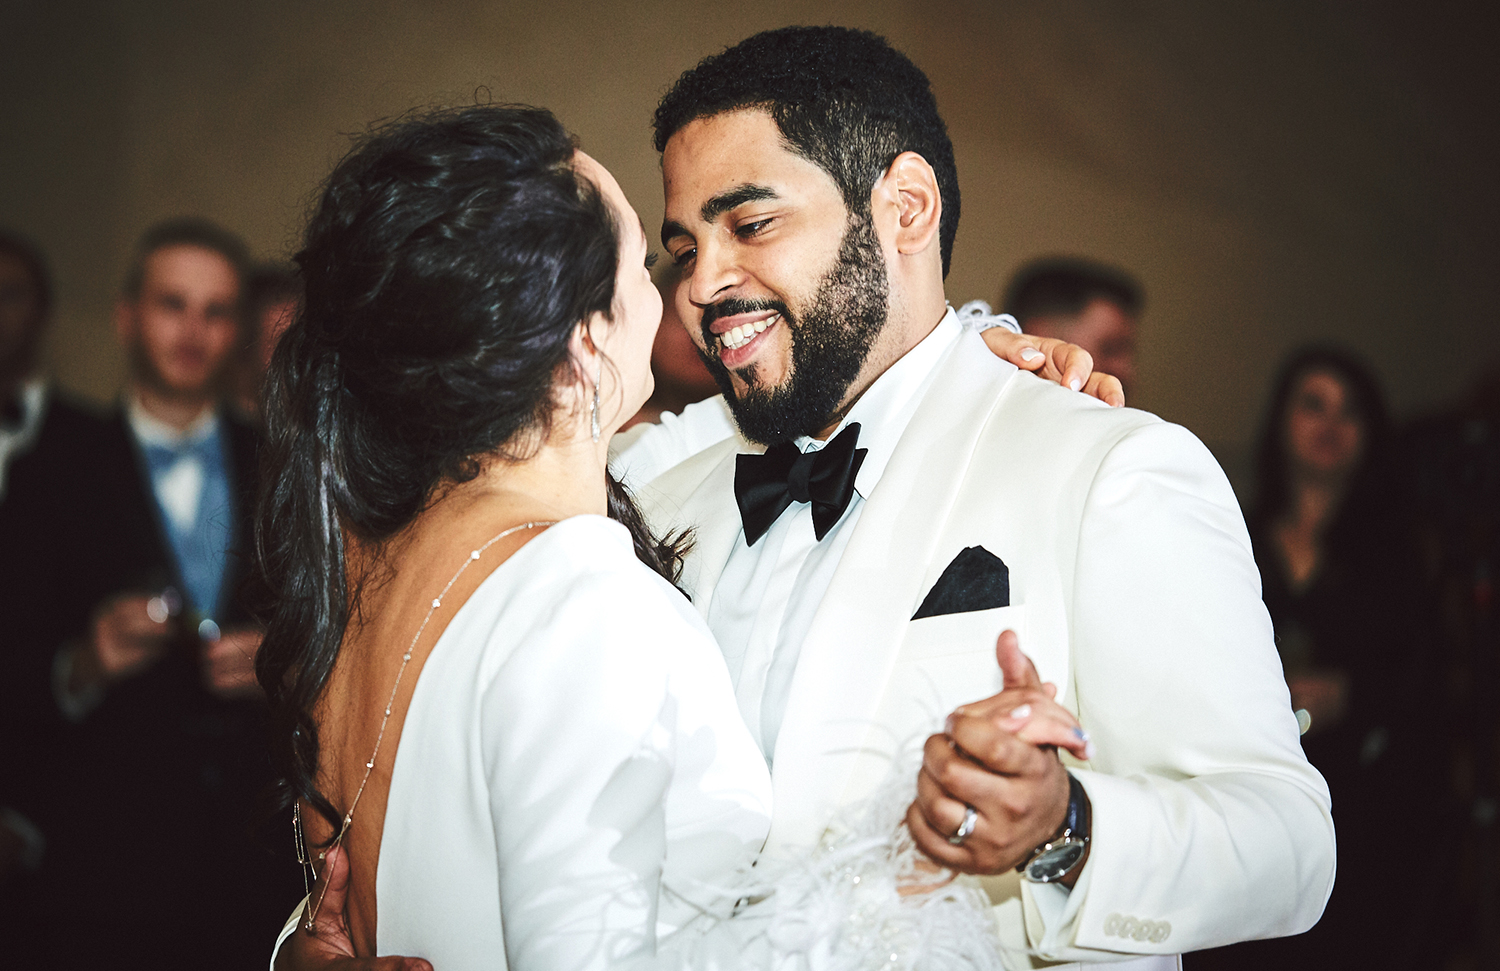 170930_WilliamValeWeddingPhotography_BrooklynWeddingPhotographer_By_BriJohnsonWeddings_0144.jpg